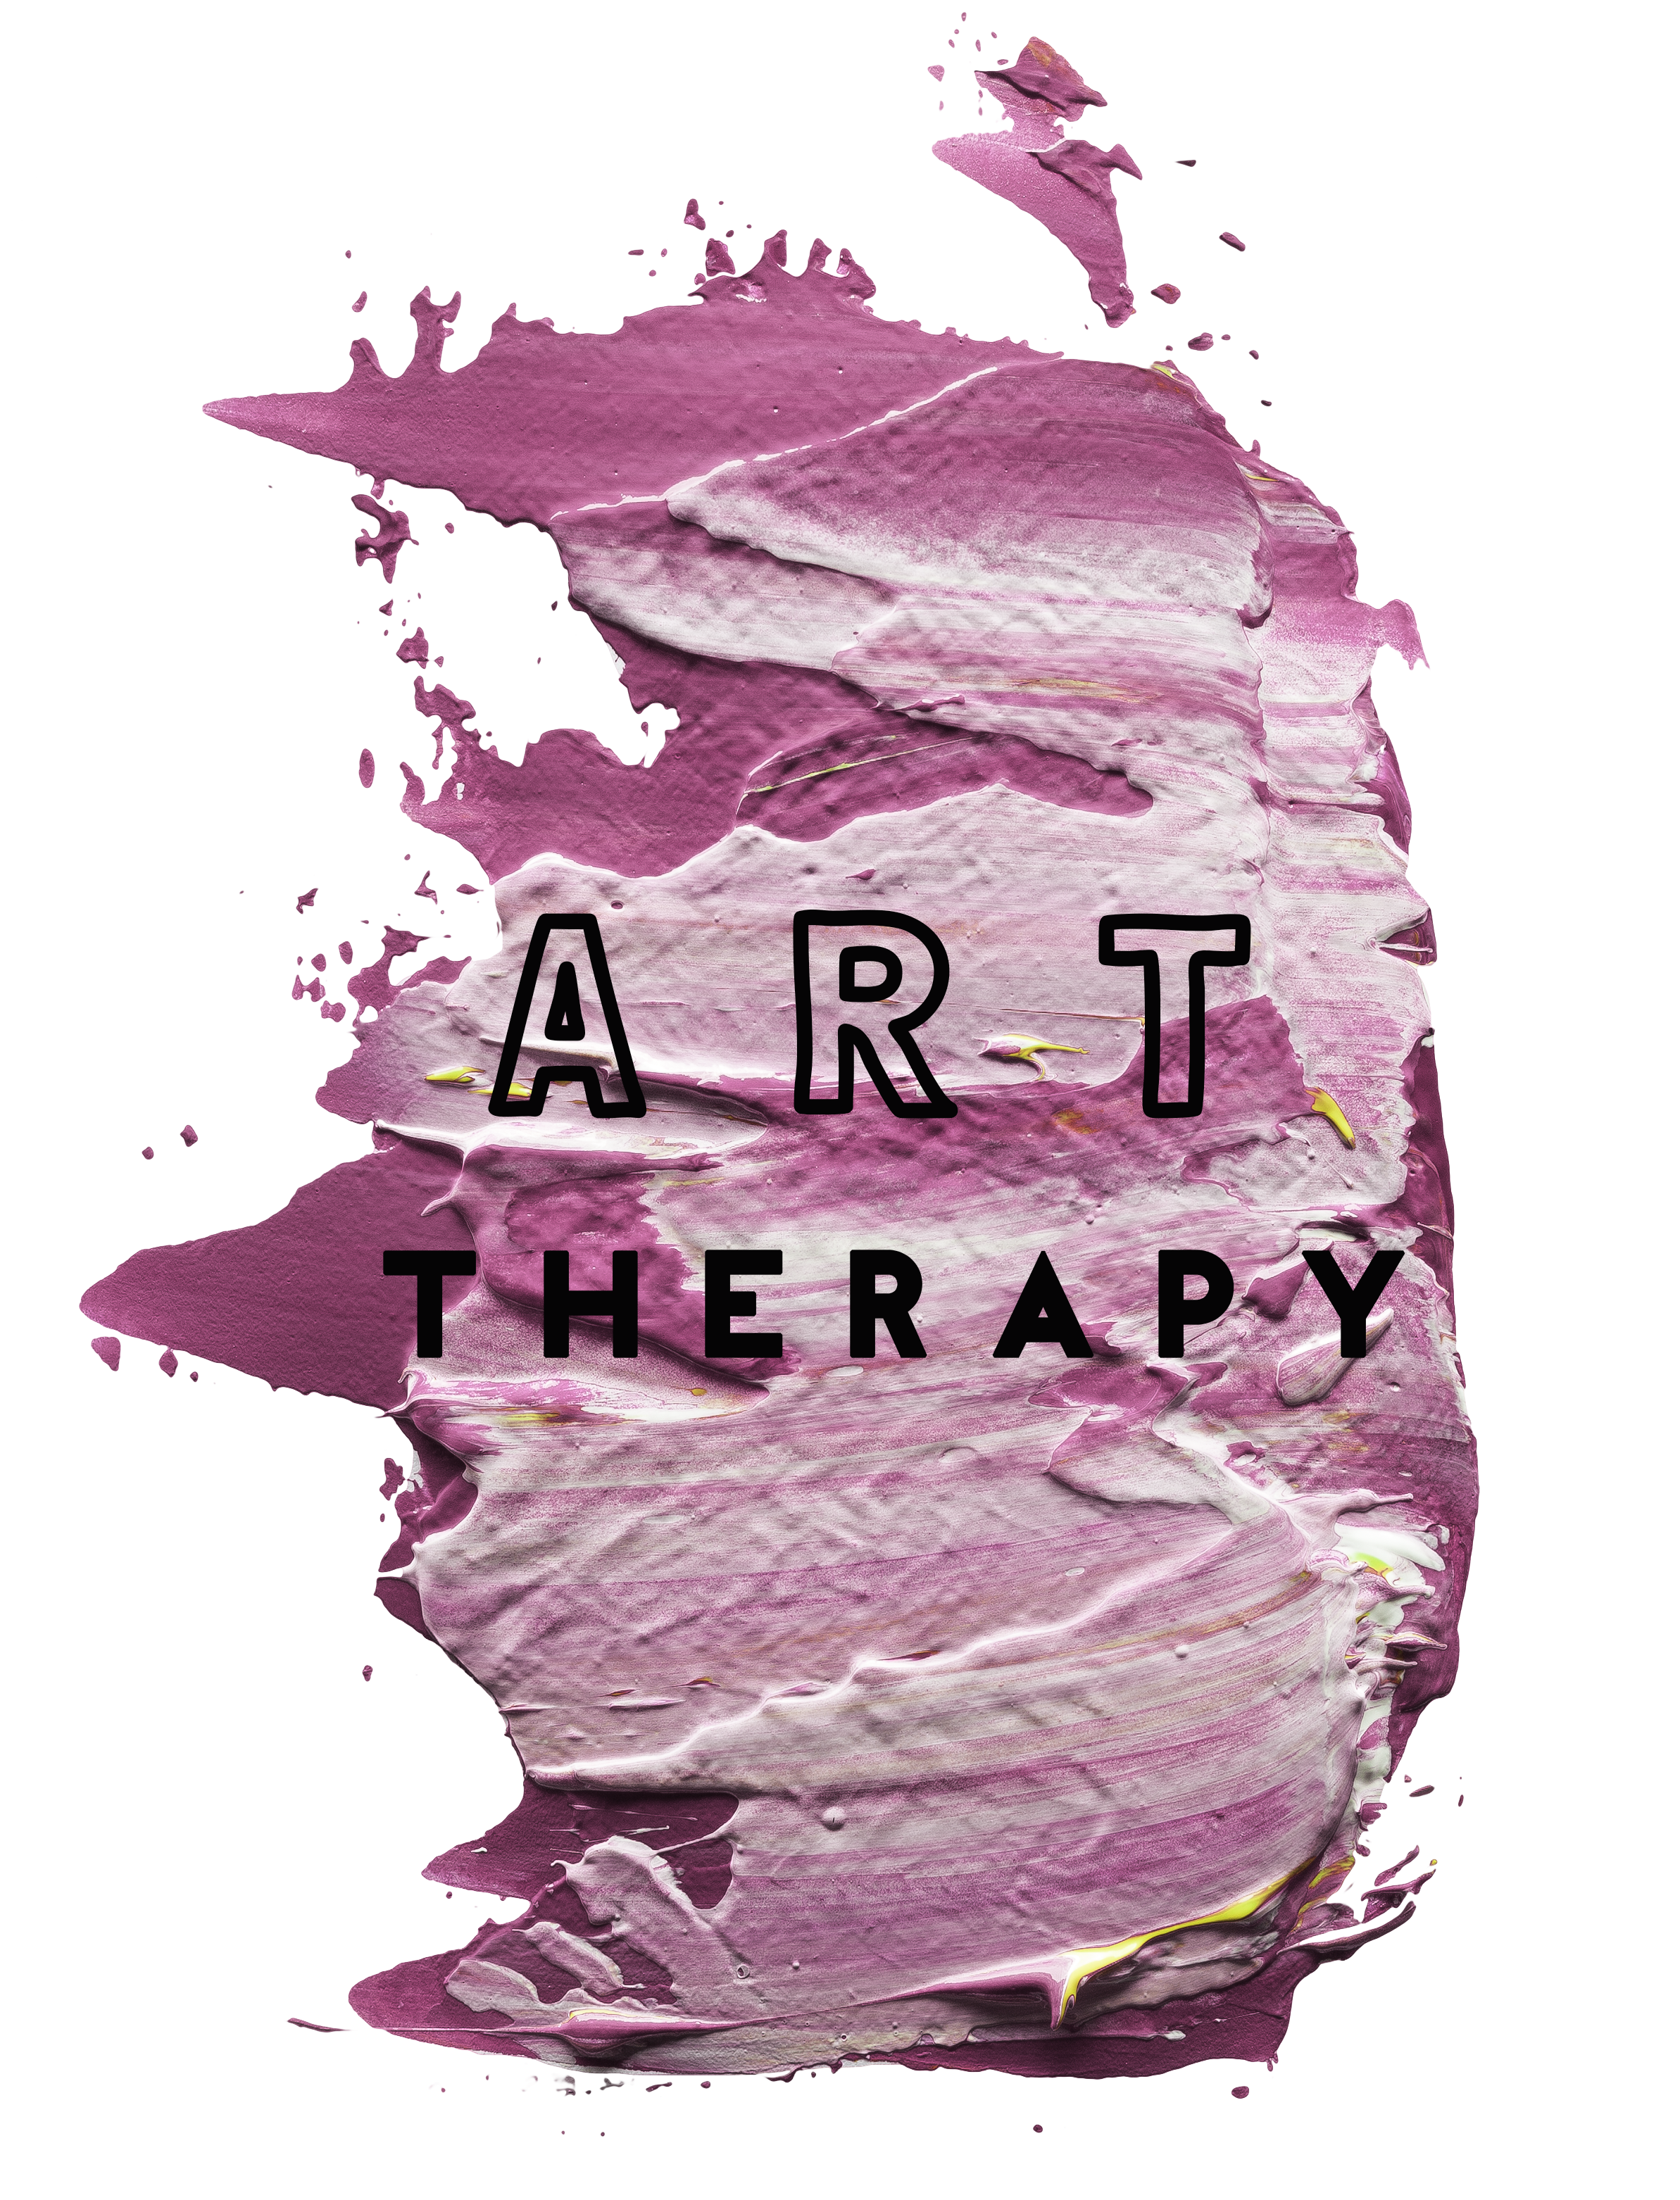 ARTTHERAPY.png